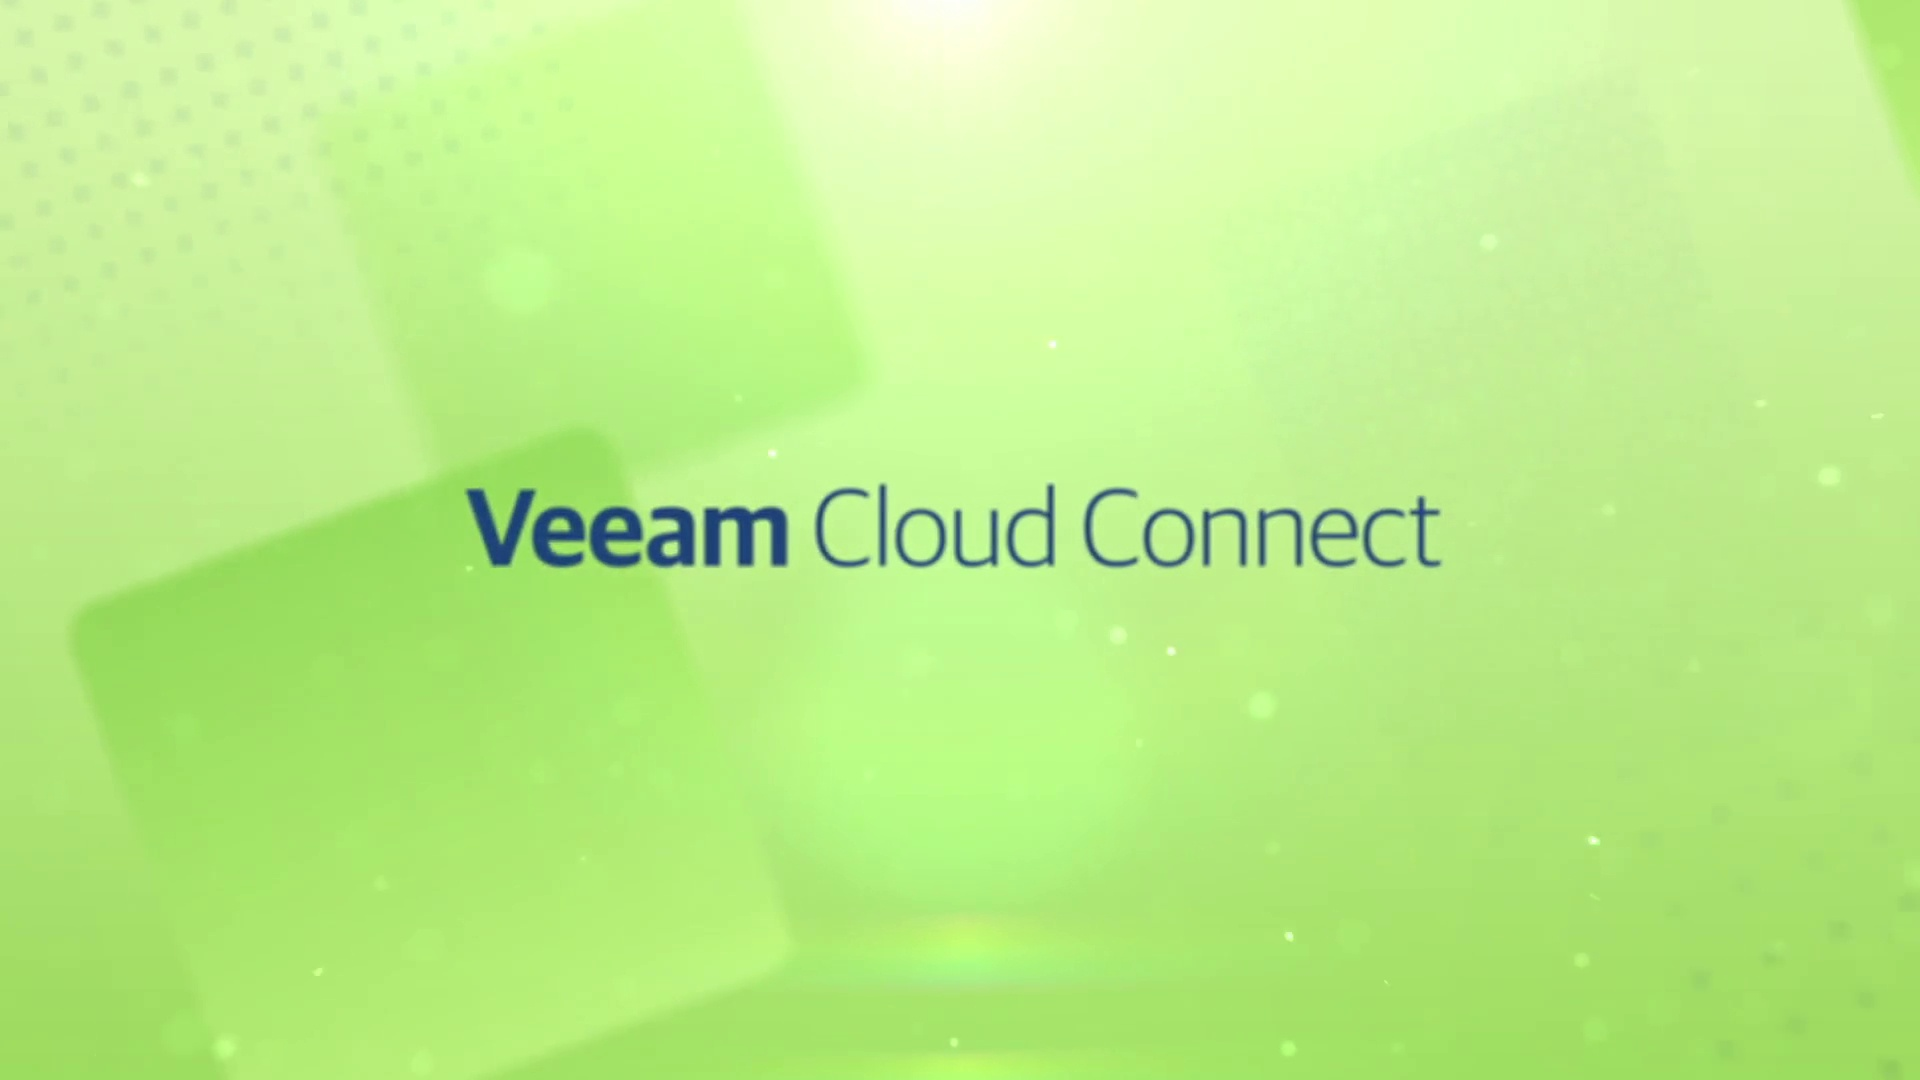 Product launch v11 - Veeam Cloud Connect